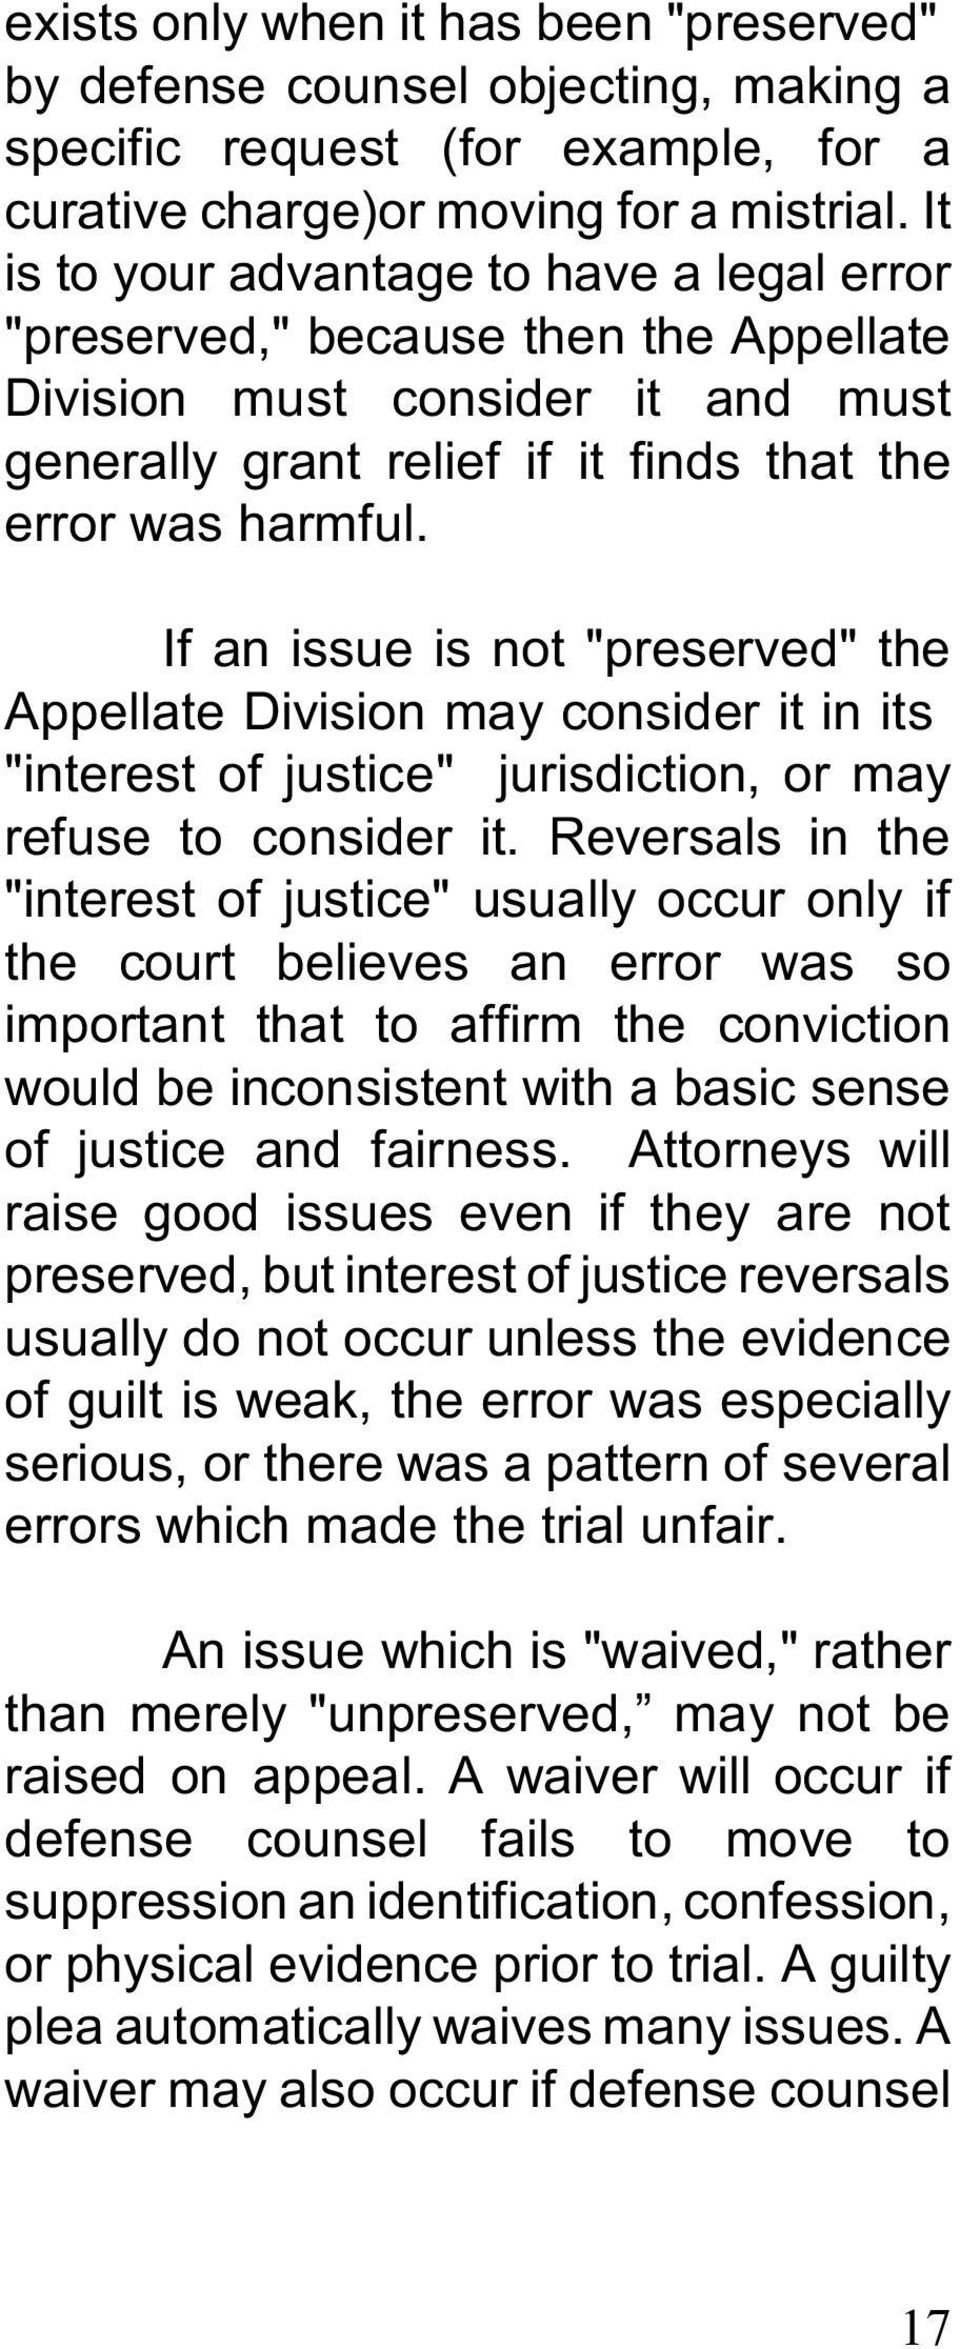 "If an issue is not ""preserved"" the Appellate Division may consider it in its ""interest of justice"" jurisdiction, or may refuse to consider it."